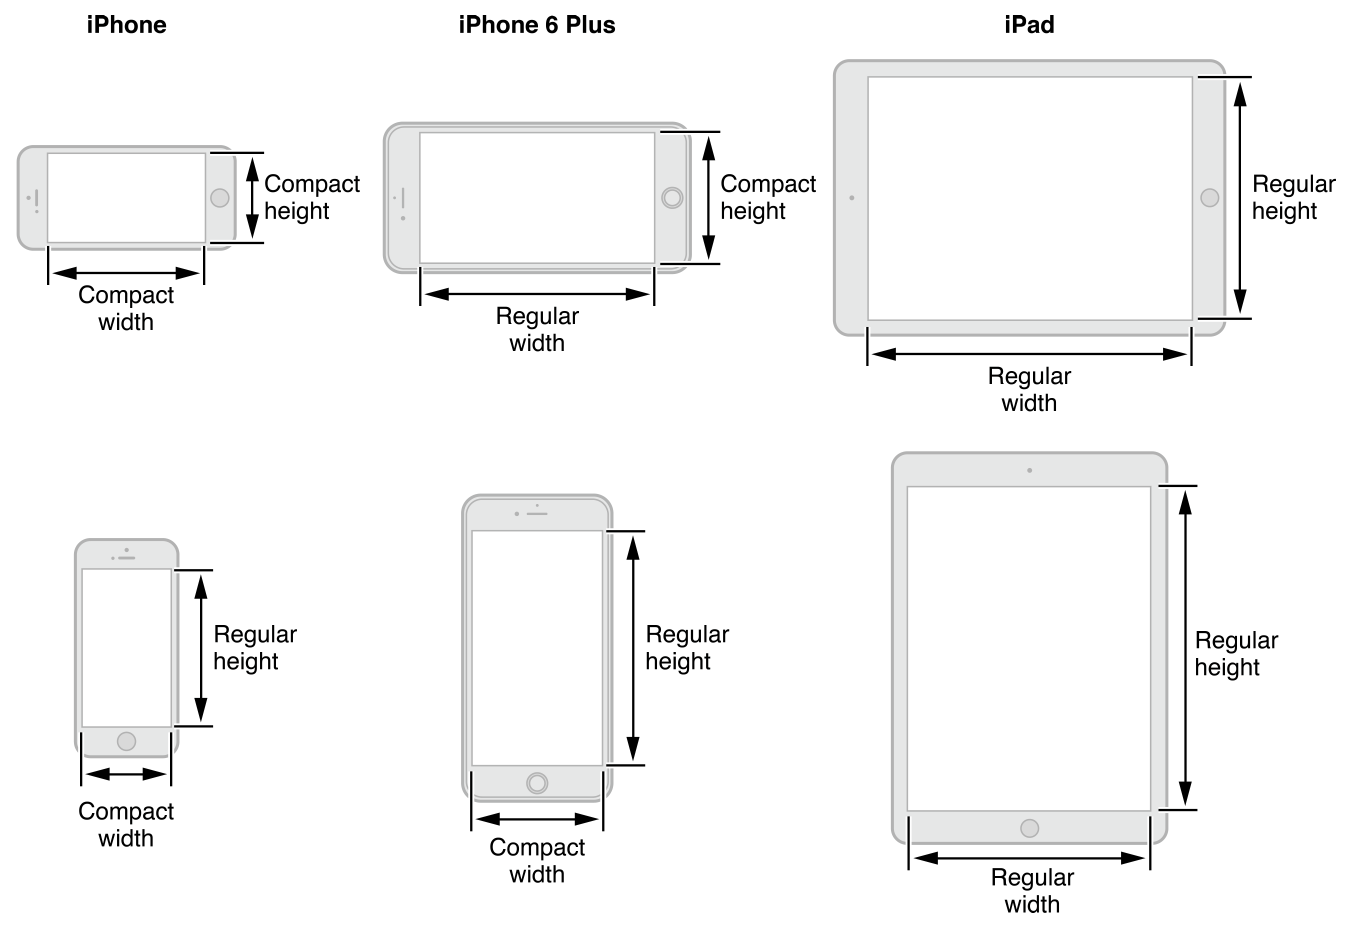 Diagram of the iOS size classes